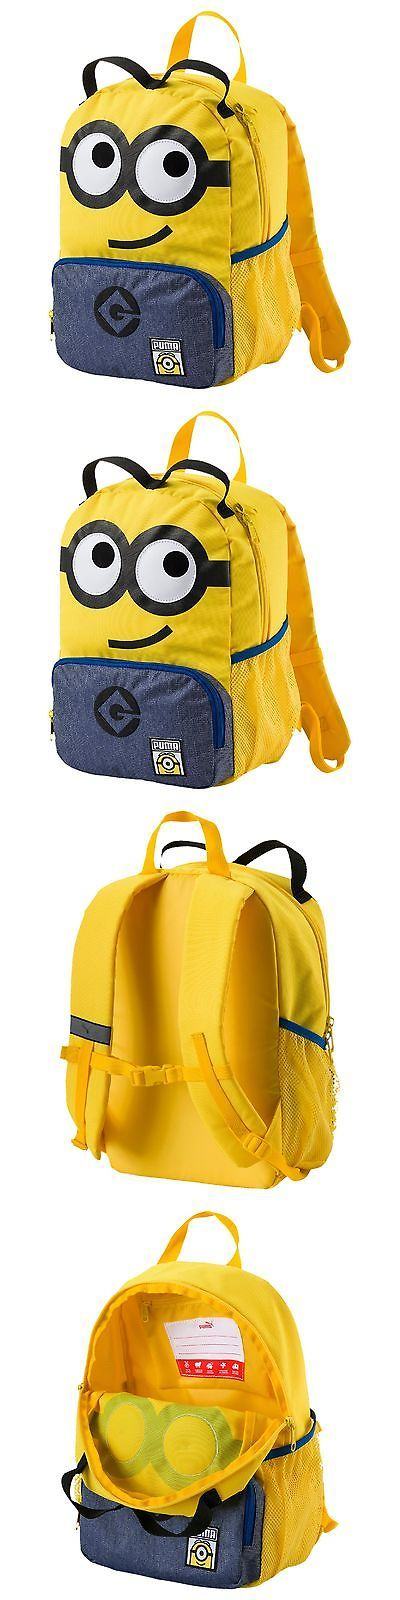 Backpacks and Bags 57882: Kids Minions Backpack -> BUY IT NOW ONLY: $40 on eBay!